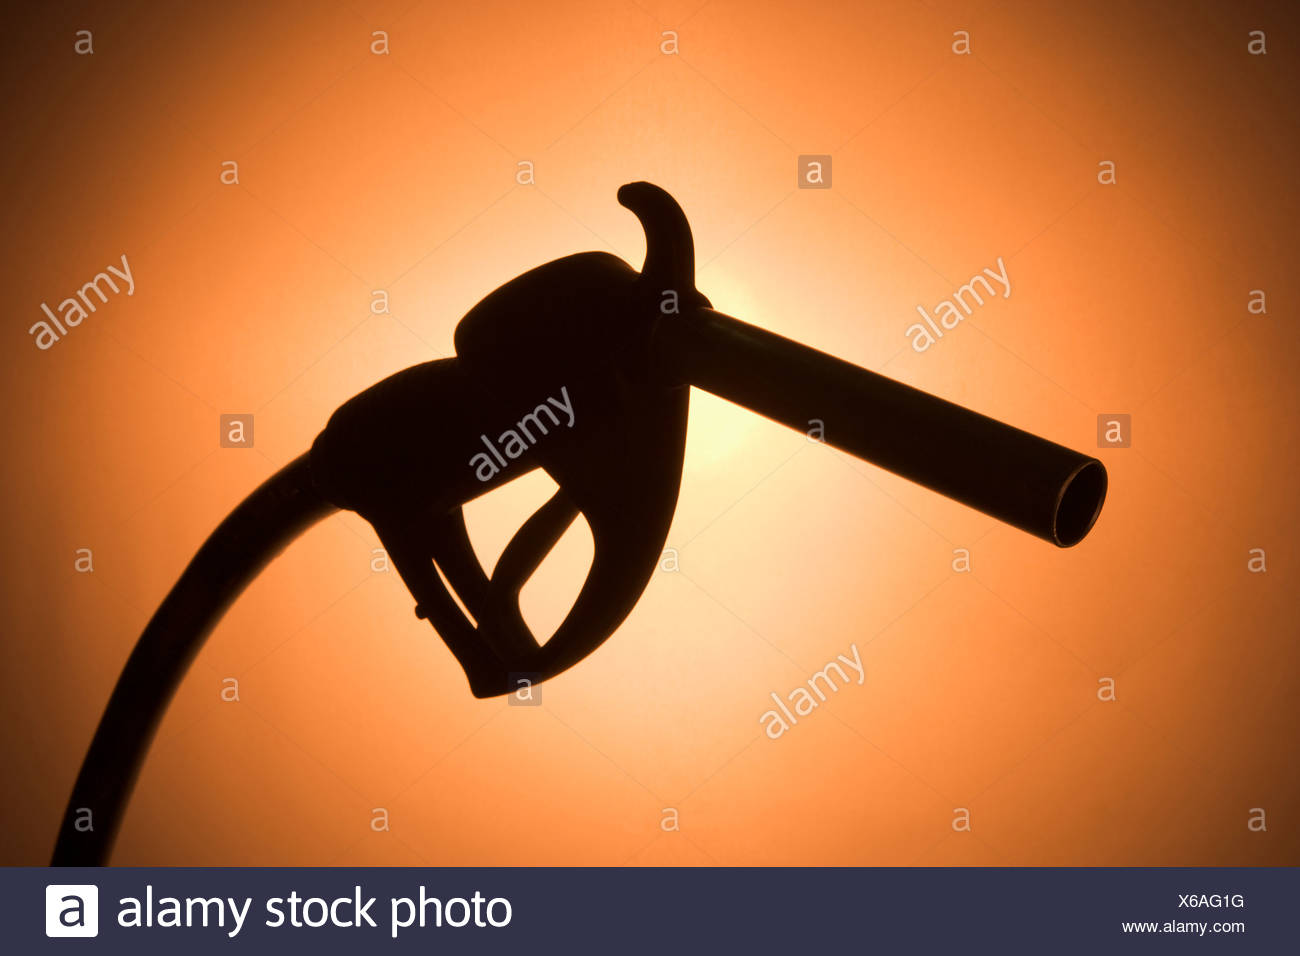 Silhouette Of A Fuel Pump - Stock Image